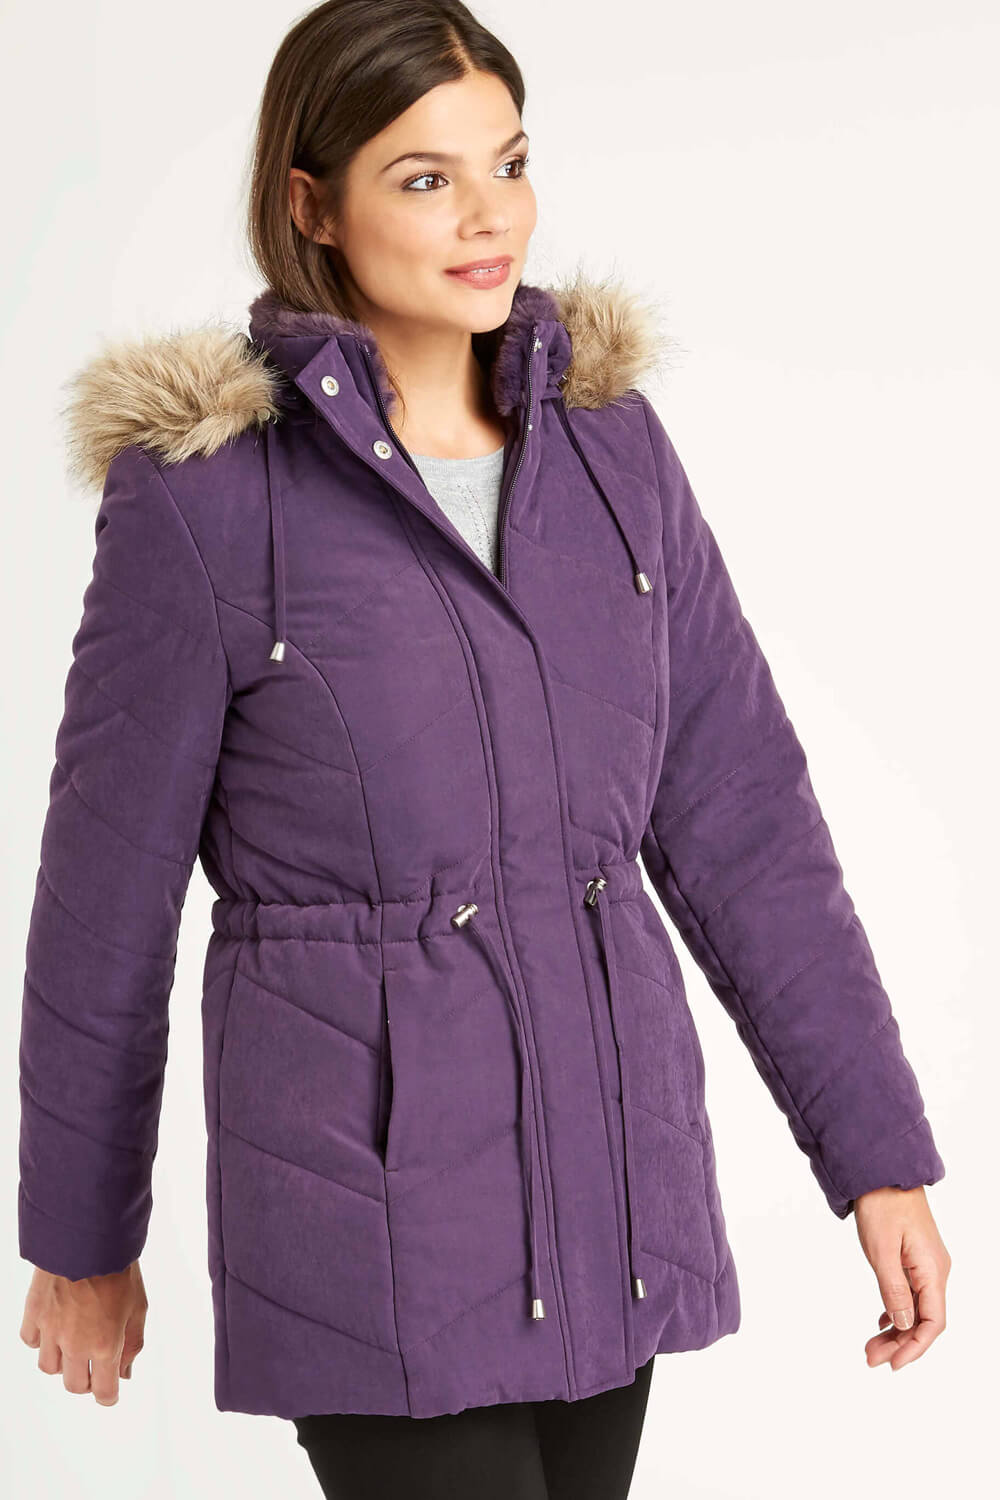 Roman-Originals-Women-039-s-Blue-Quilted-Parka-Coat-with-Hood-Sizes-10-20 thumbnail 21